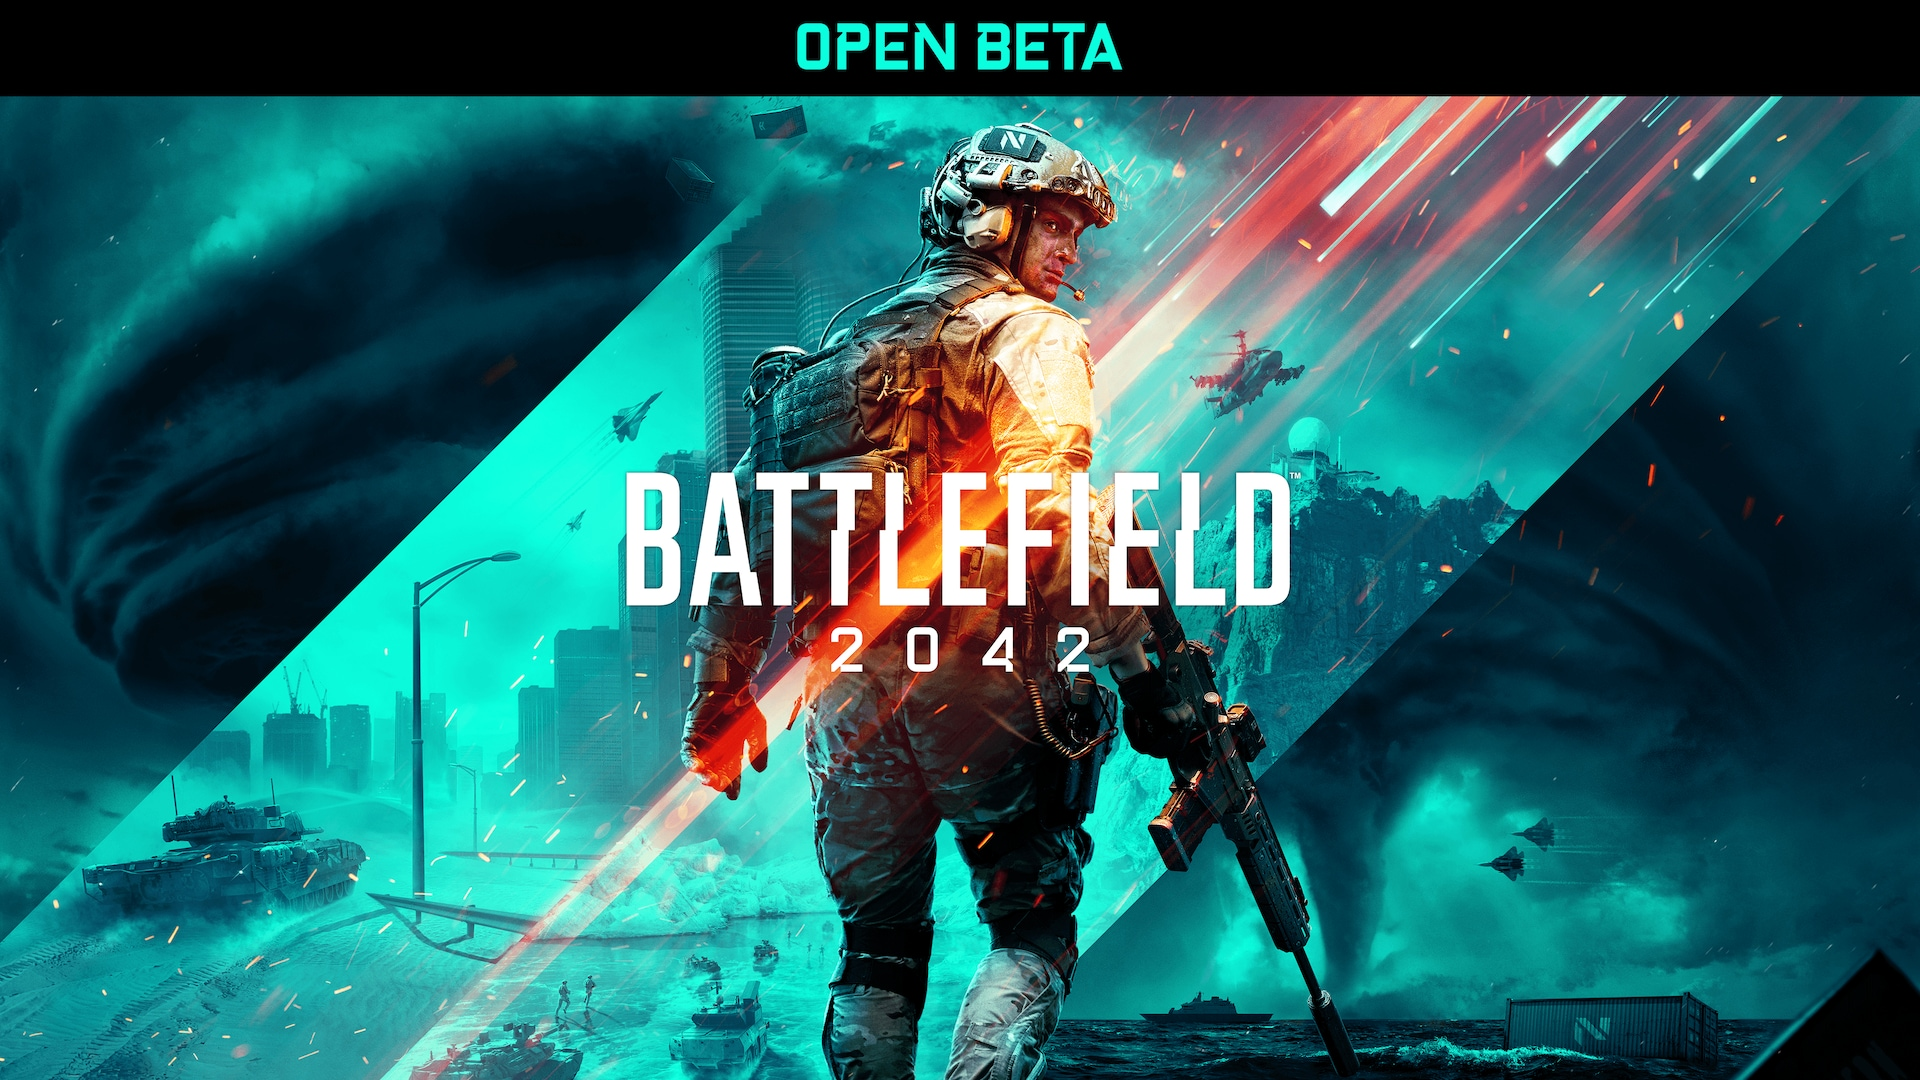 Play Battlefield 2042 Open Beta on Epic Games Store.